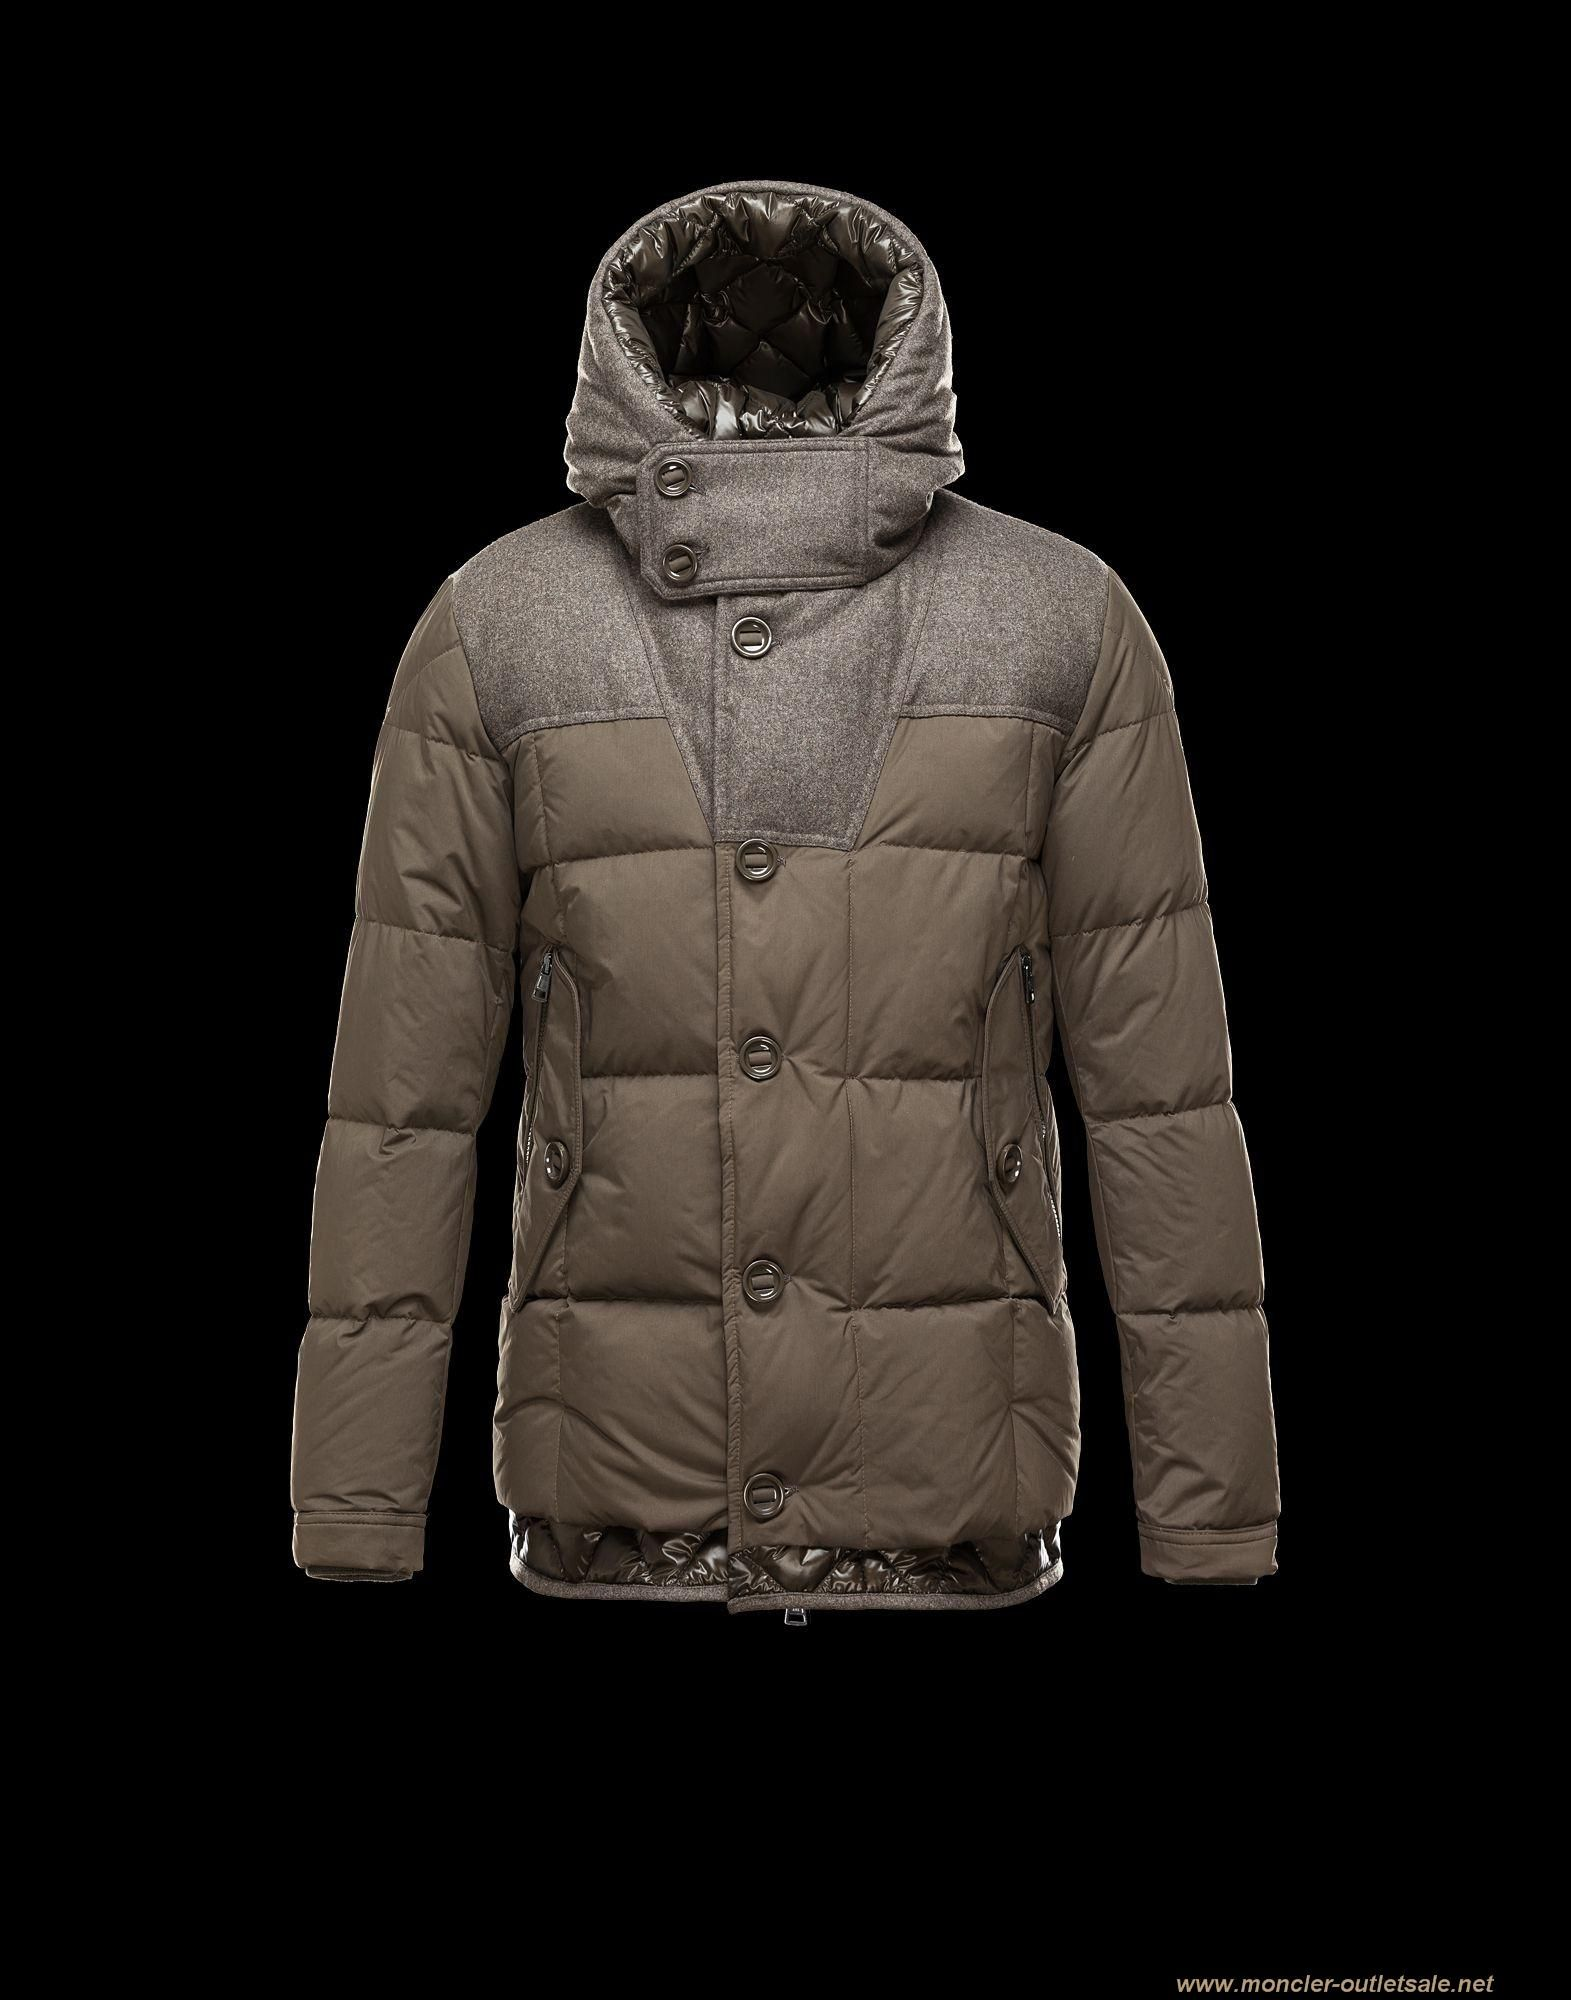 2013 New! Moncler PYRENEES Jacket For Men Hooded Army